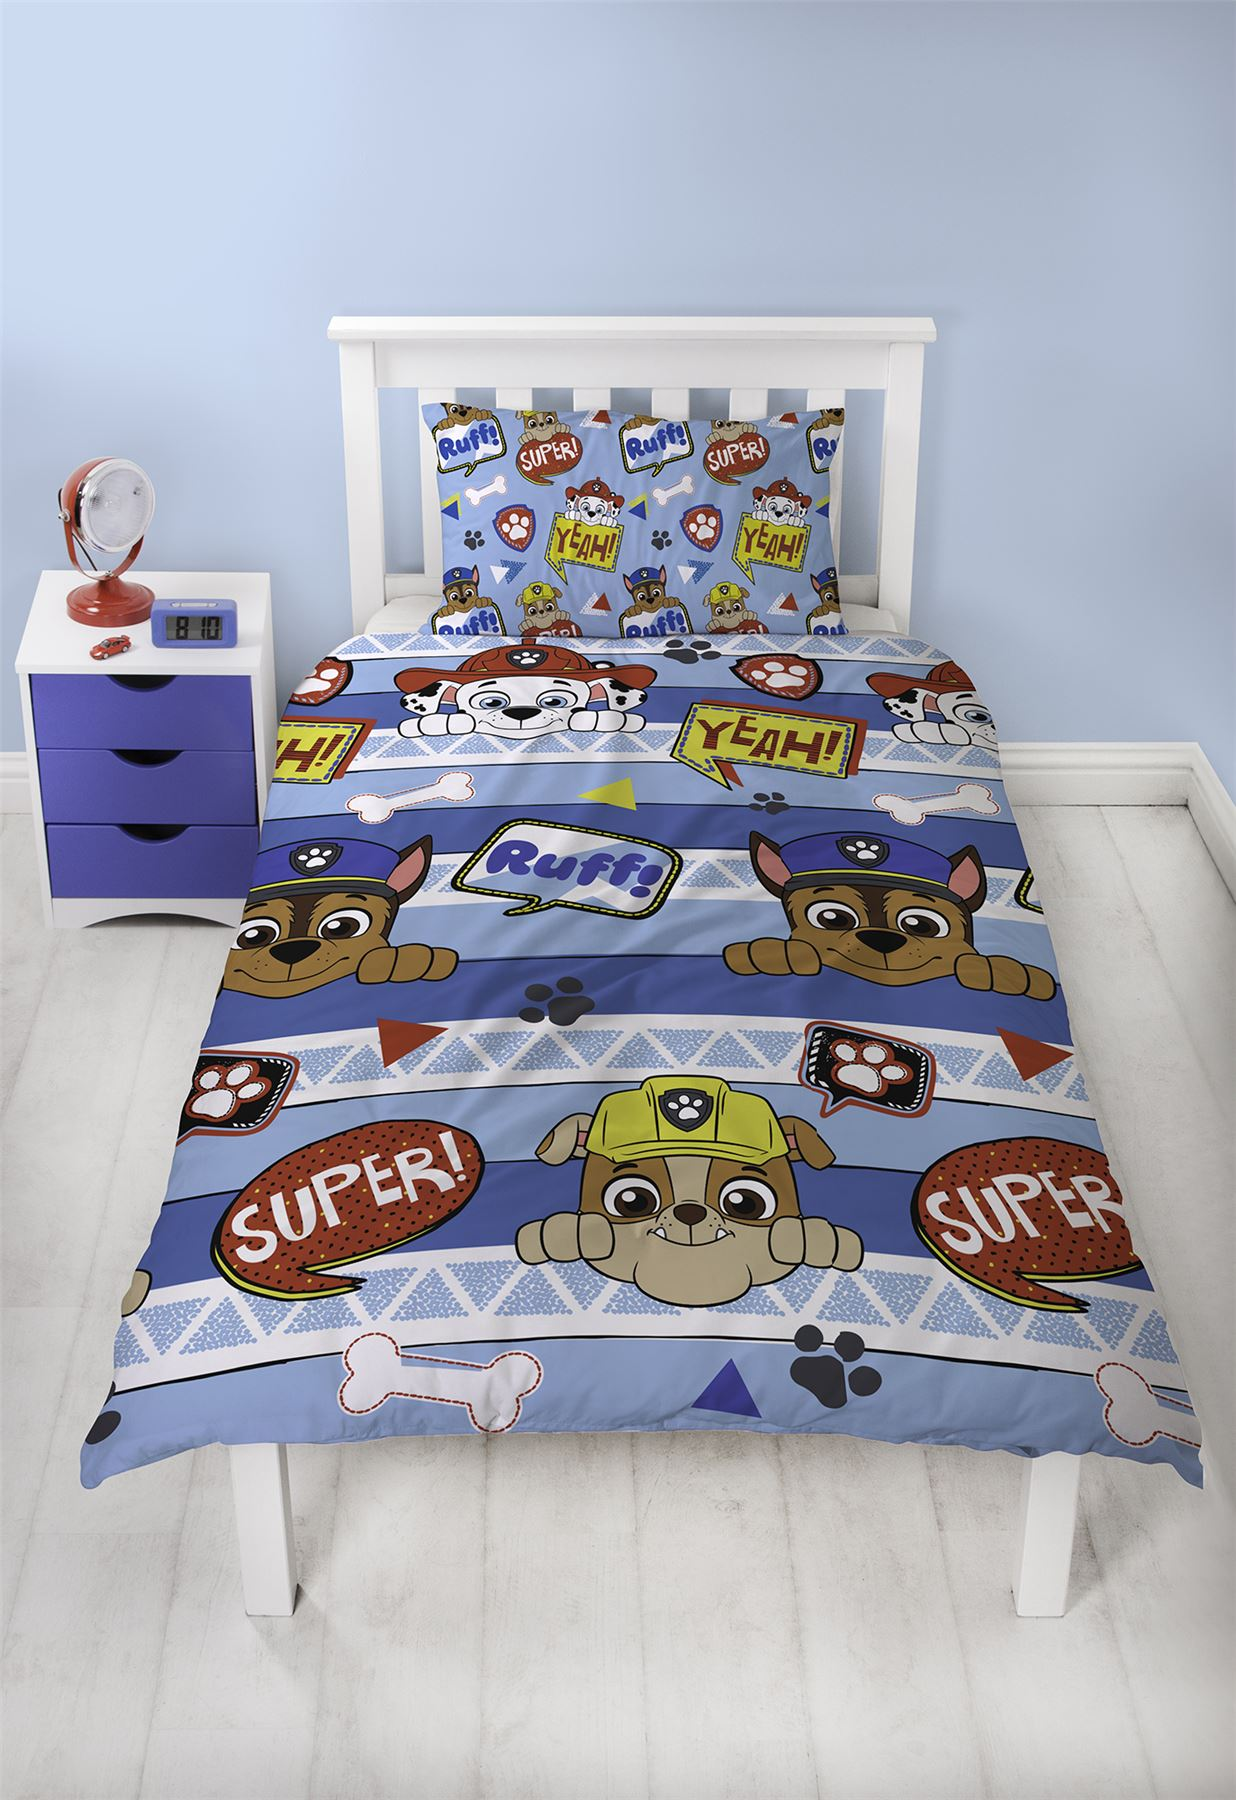 Official-Paw-Patrol-Licensed-Duvet-Covers-Single-Double-Chase-Skye-Marshall thumbnail 29